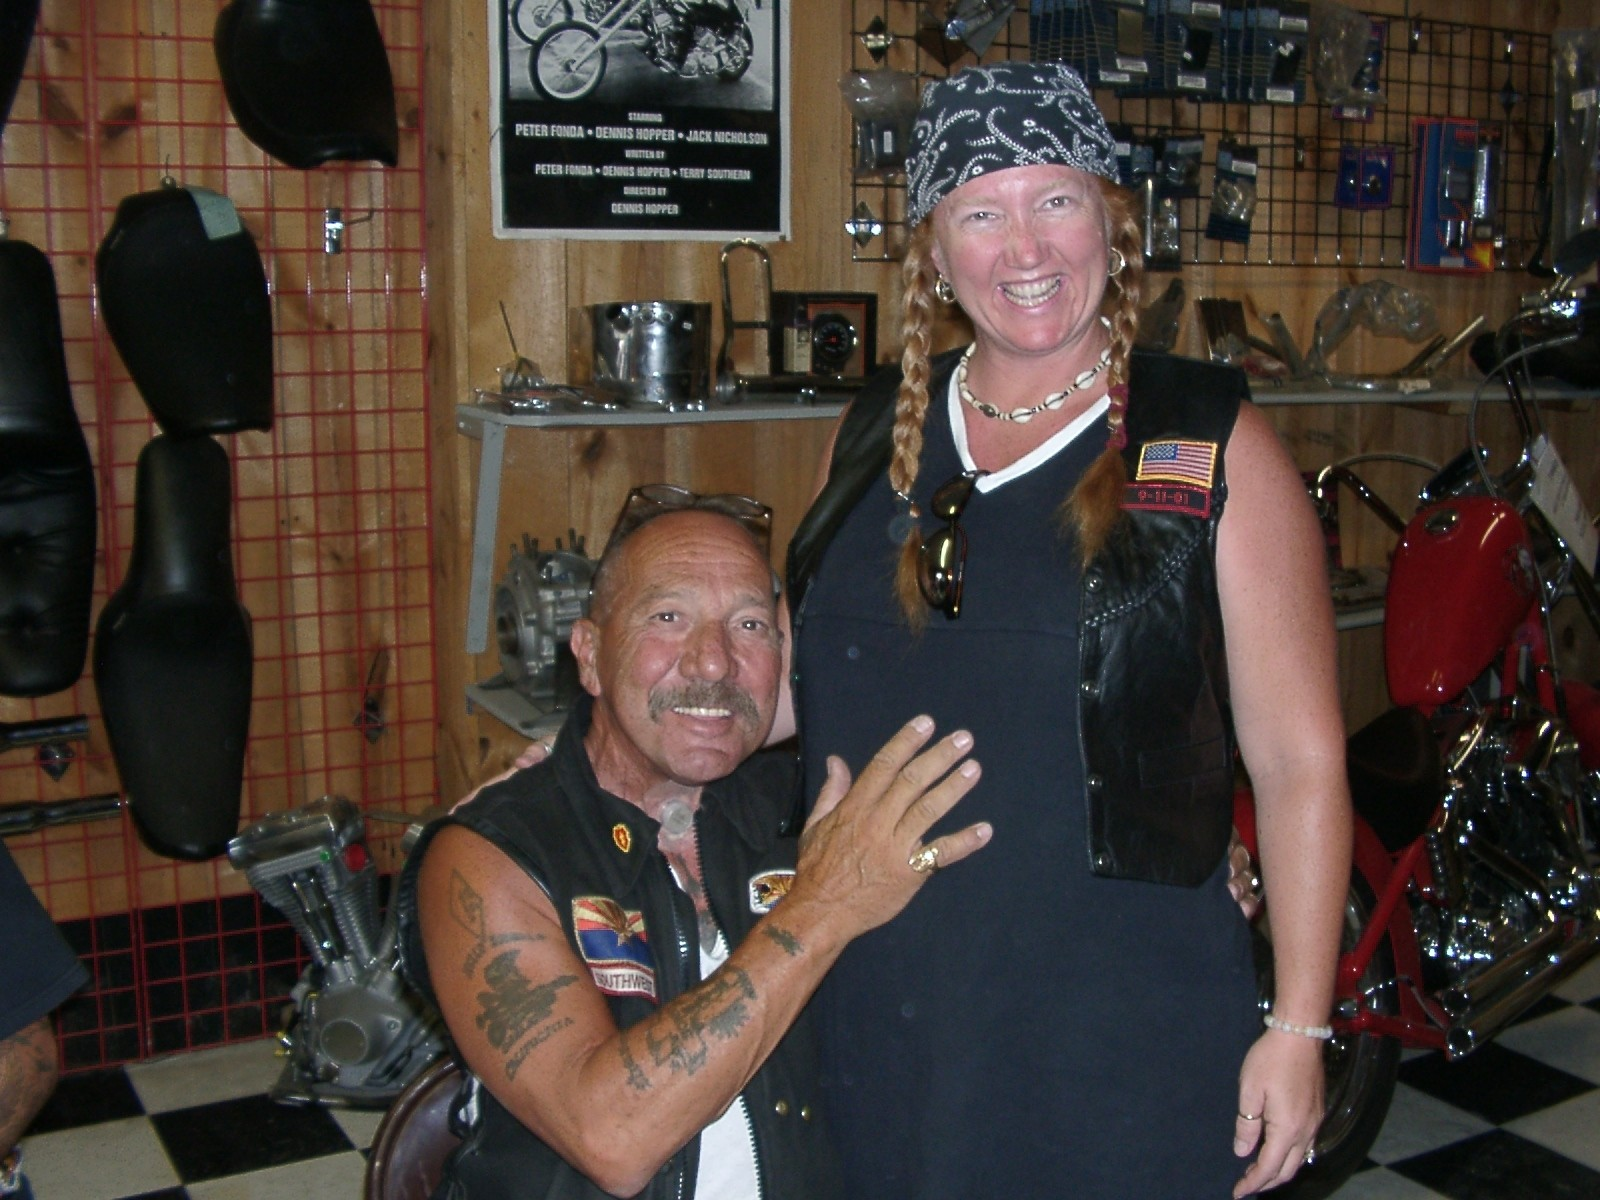 Sonny Barger with his wife Zorana Barger